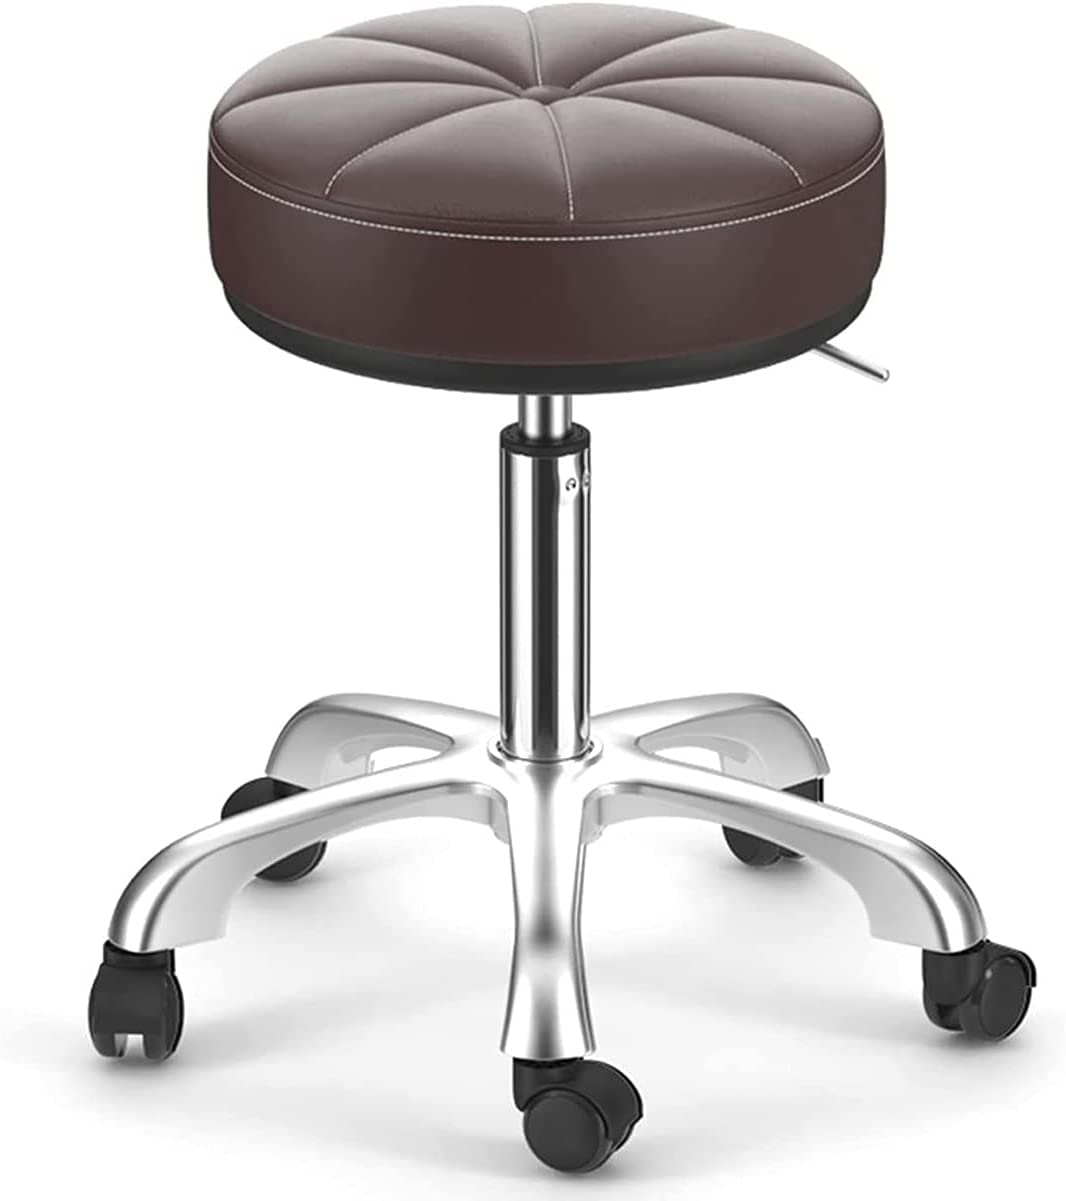 GGHHJ Stool with Roller Style Adjustable Minneapolis Mall Wheels Swivel S 2021new shipping free shipping Rolling